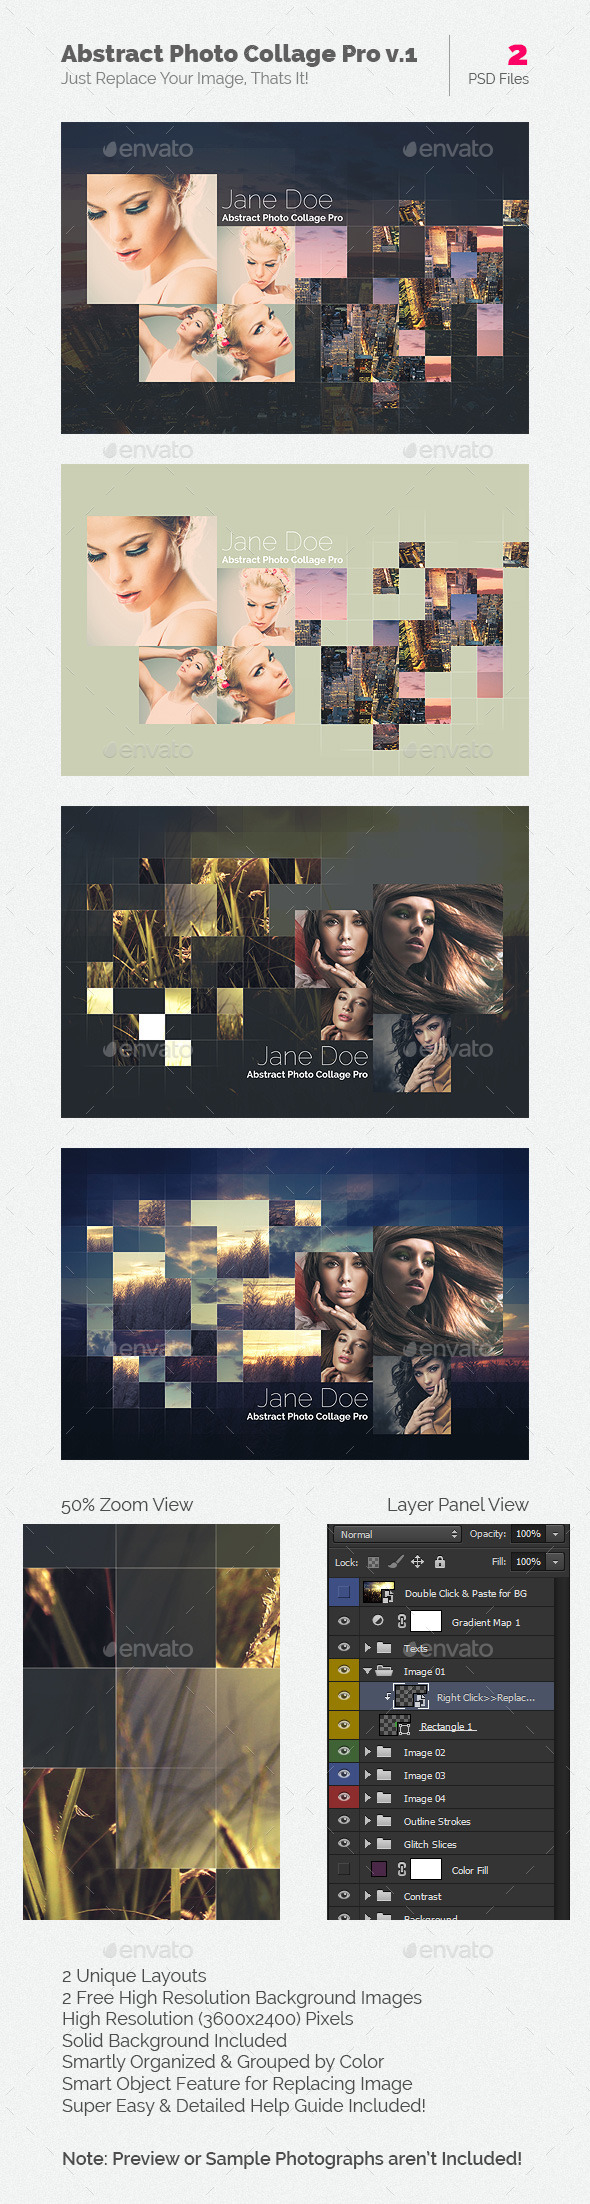 abstract_photo_collage_pro_v1_10978512